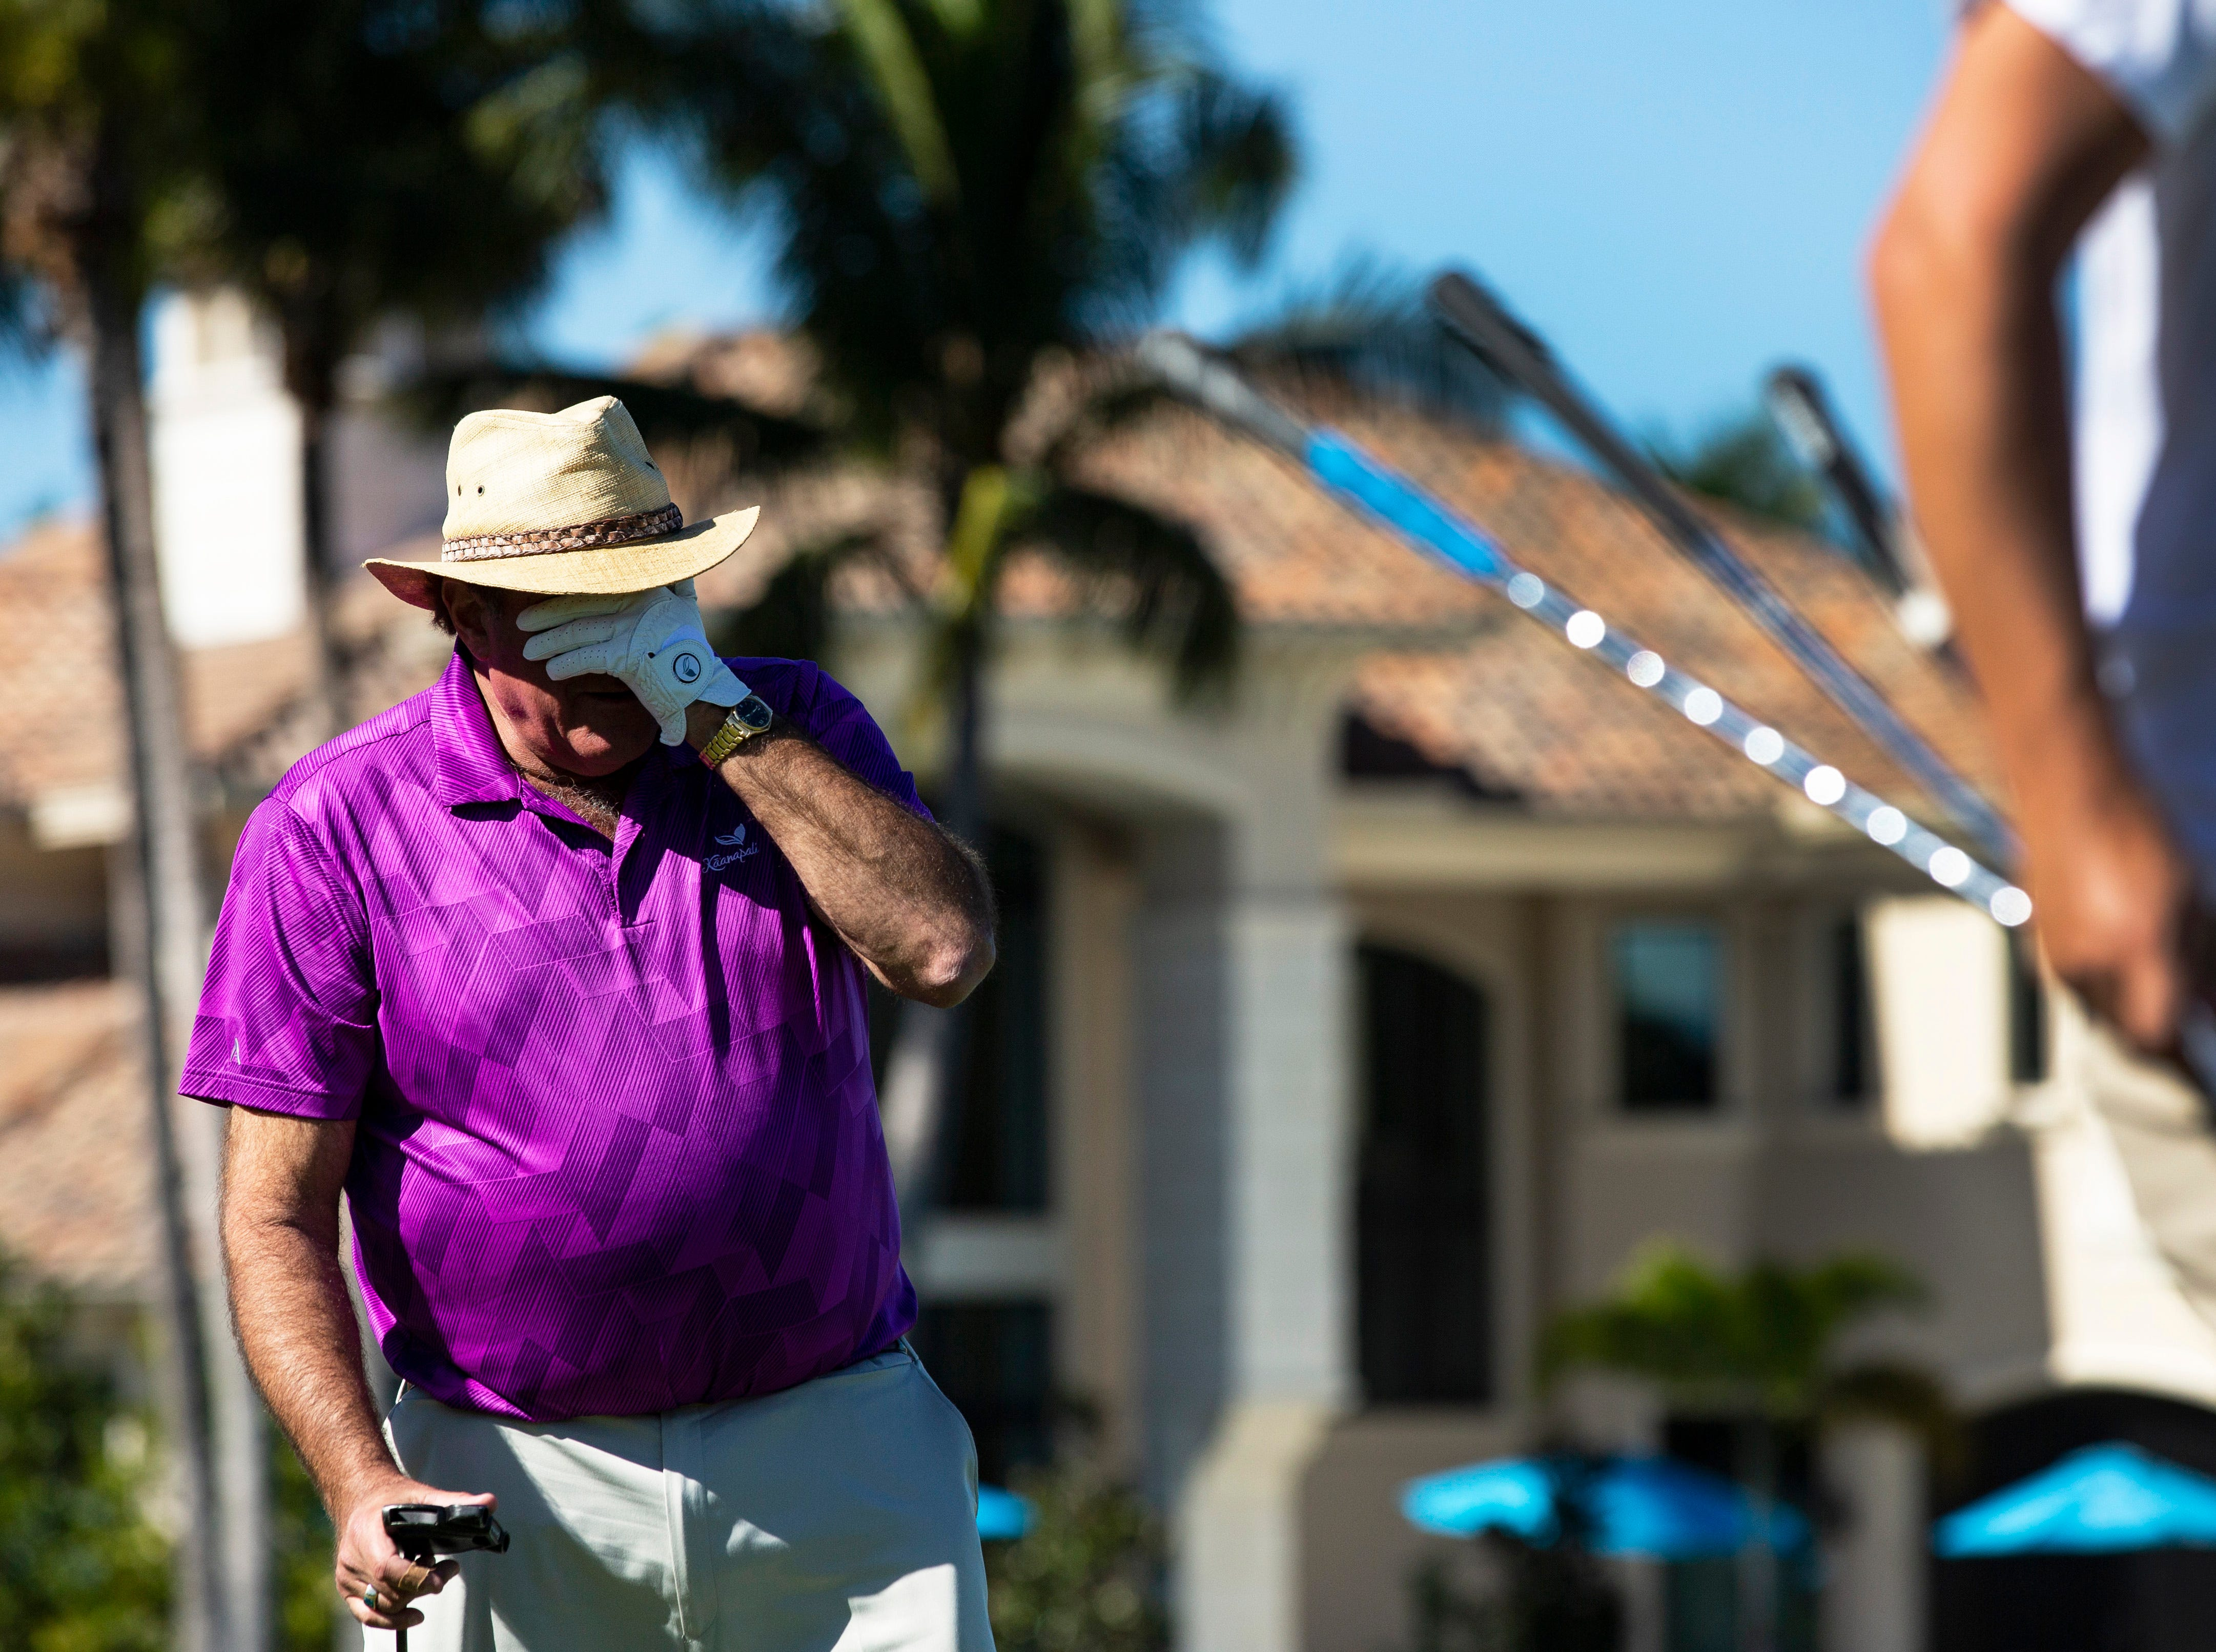 Famous American sportscaster, Chris Berman, reacts to a bad putt during the 30th annual QBE Shootout Pro - Amateur round two, on Thursday, Dec. 6, 2018, at Tiburón Golf Club in Naples. Berman was places with Tony Finau's group for the second round.